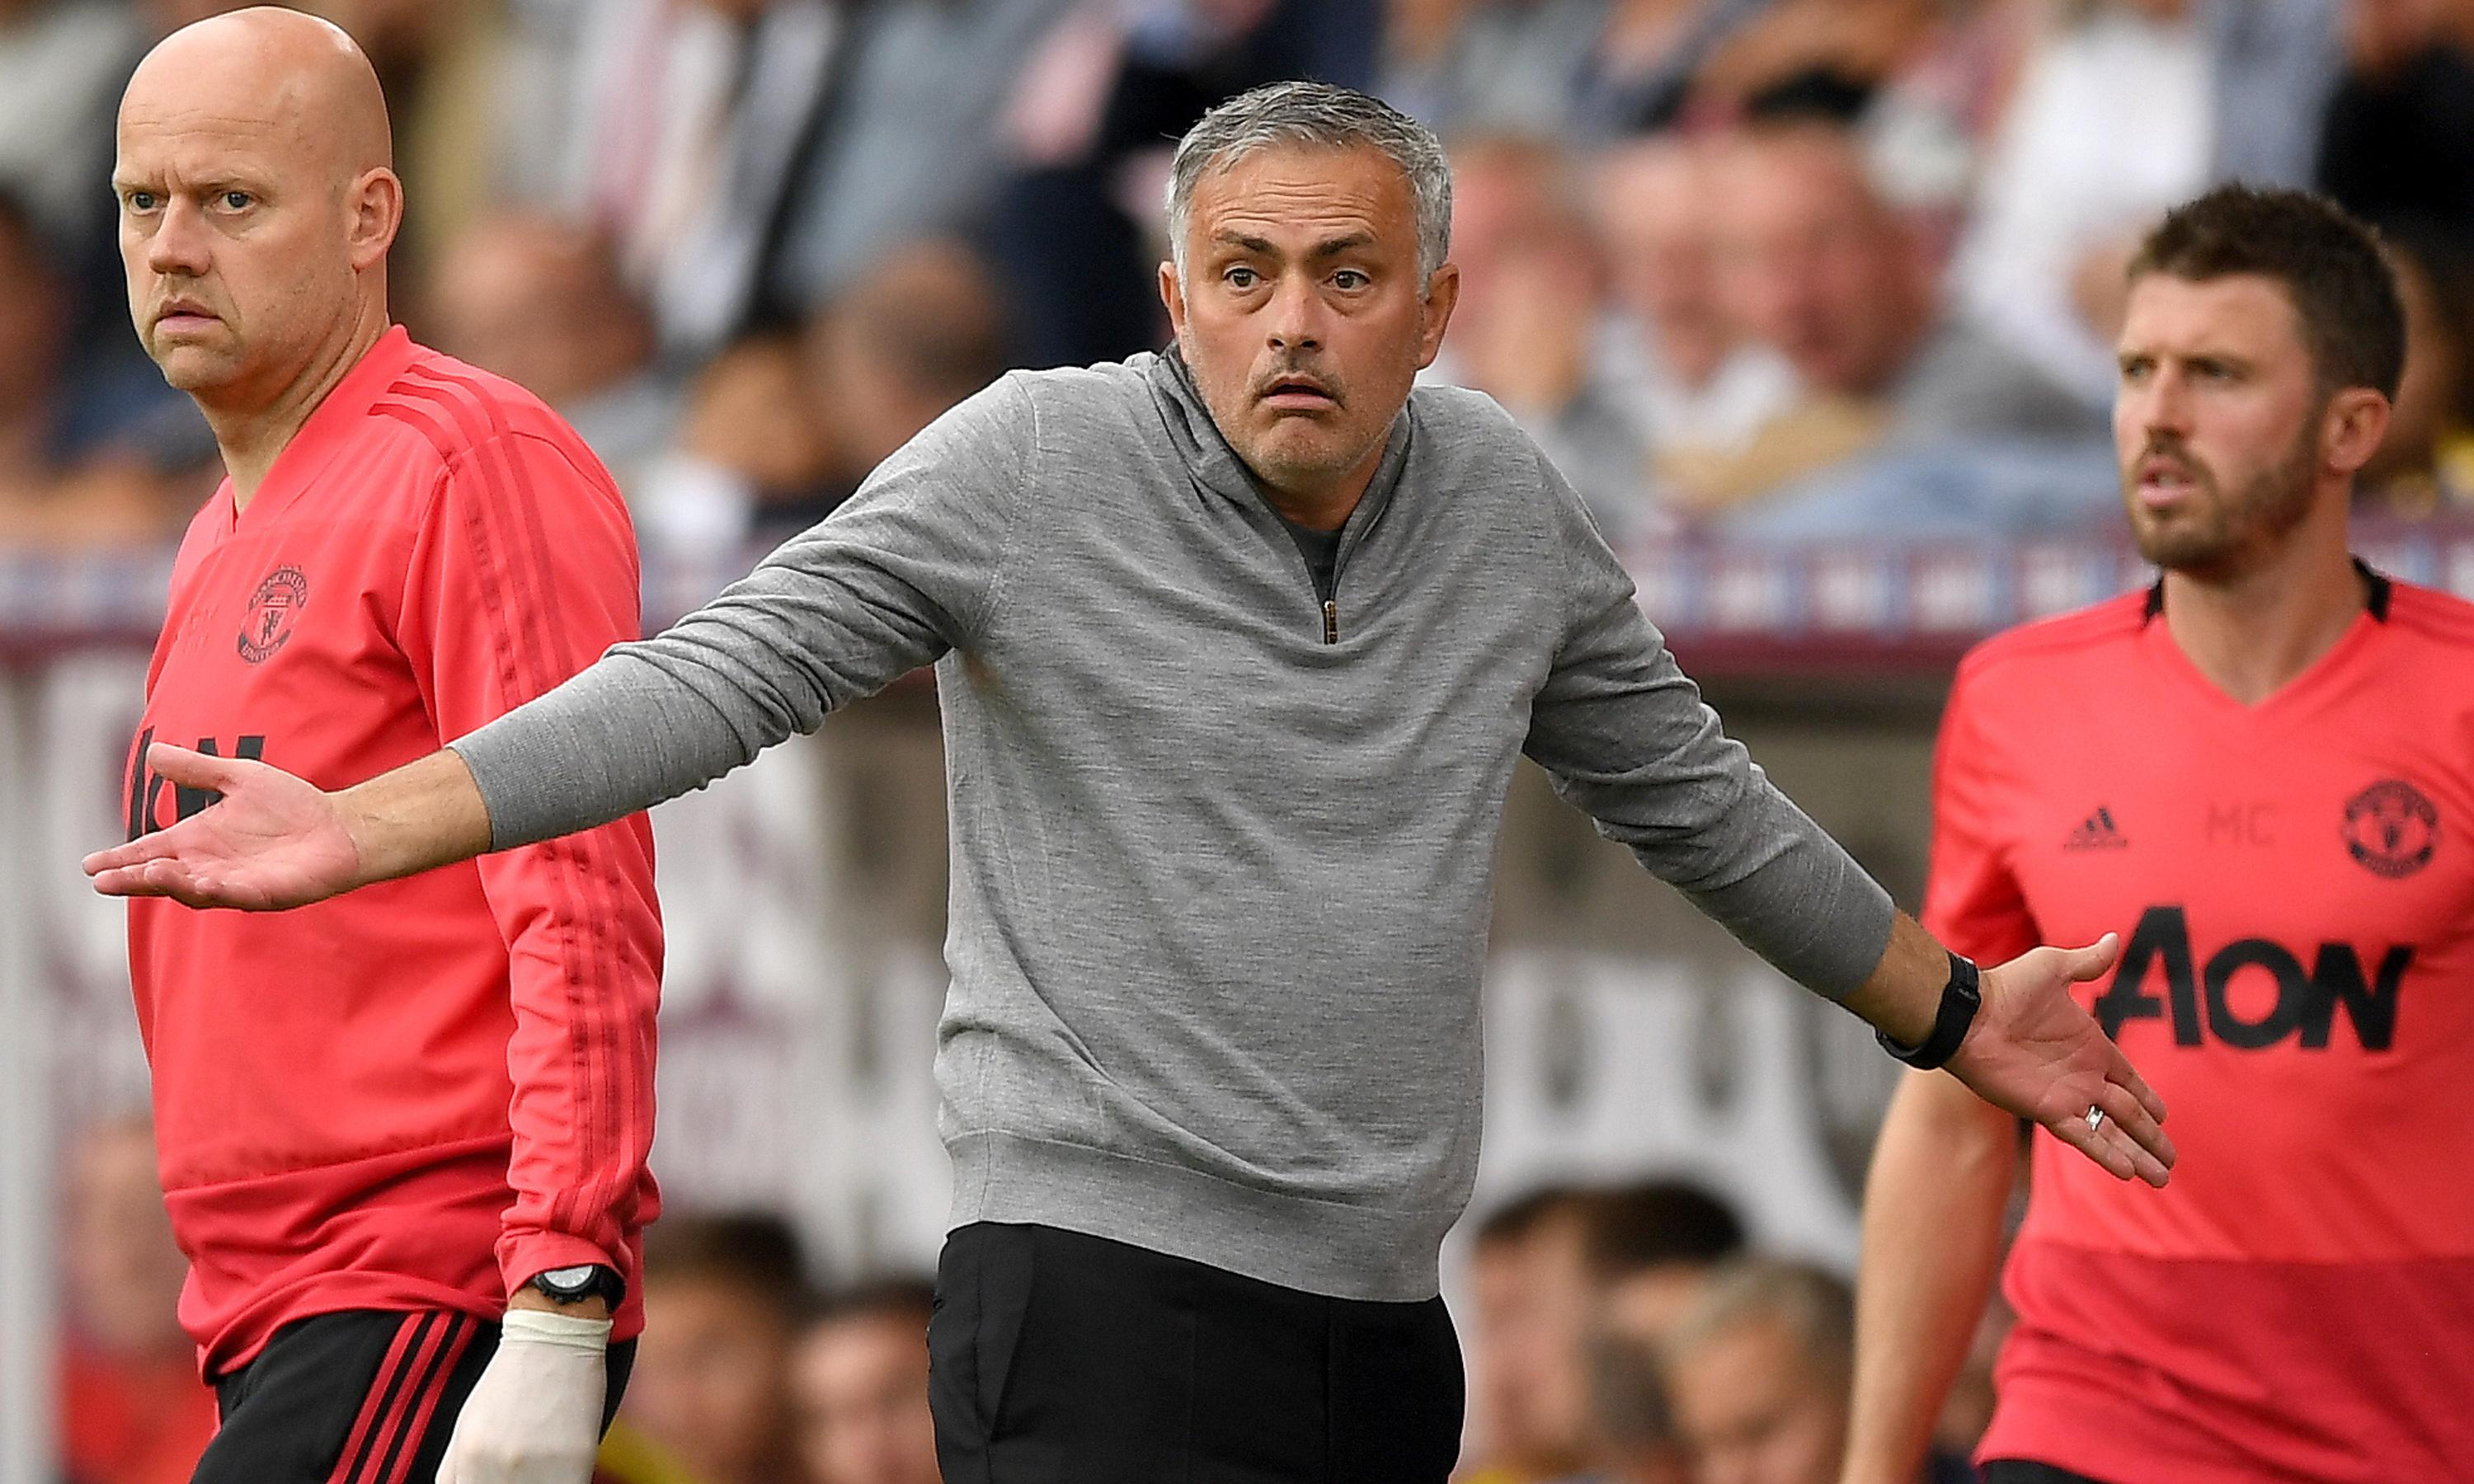 José Mourinho rejects criticism of his Manchester United tenure